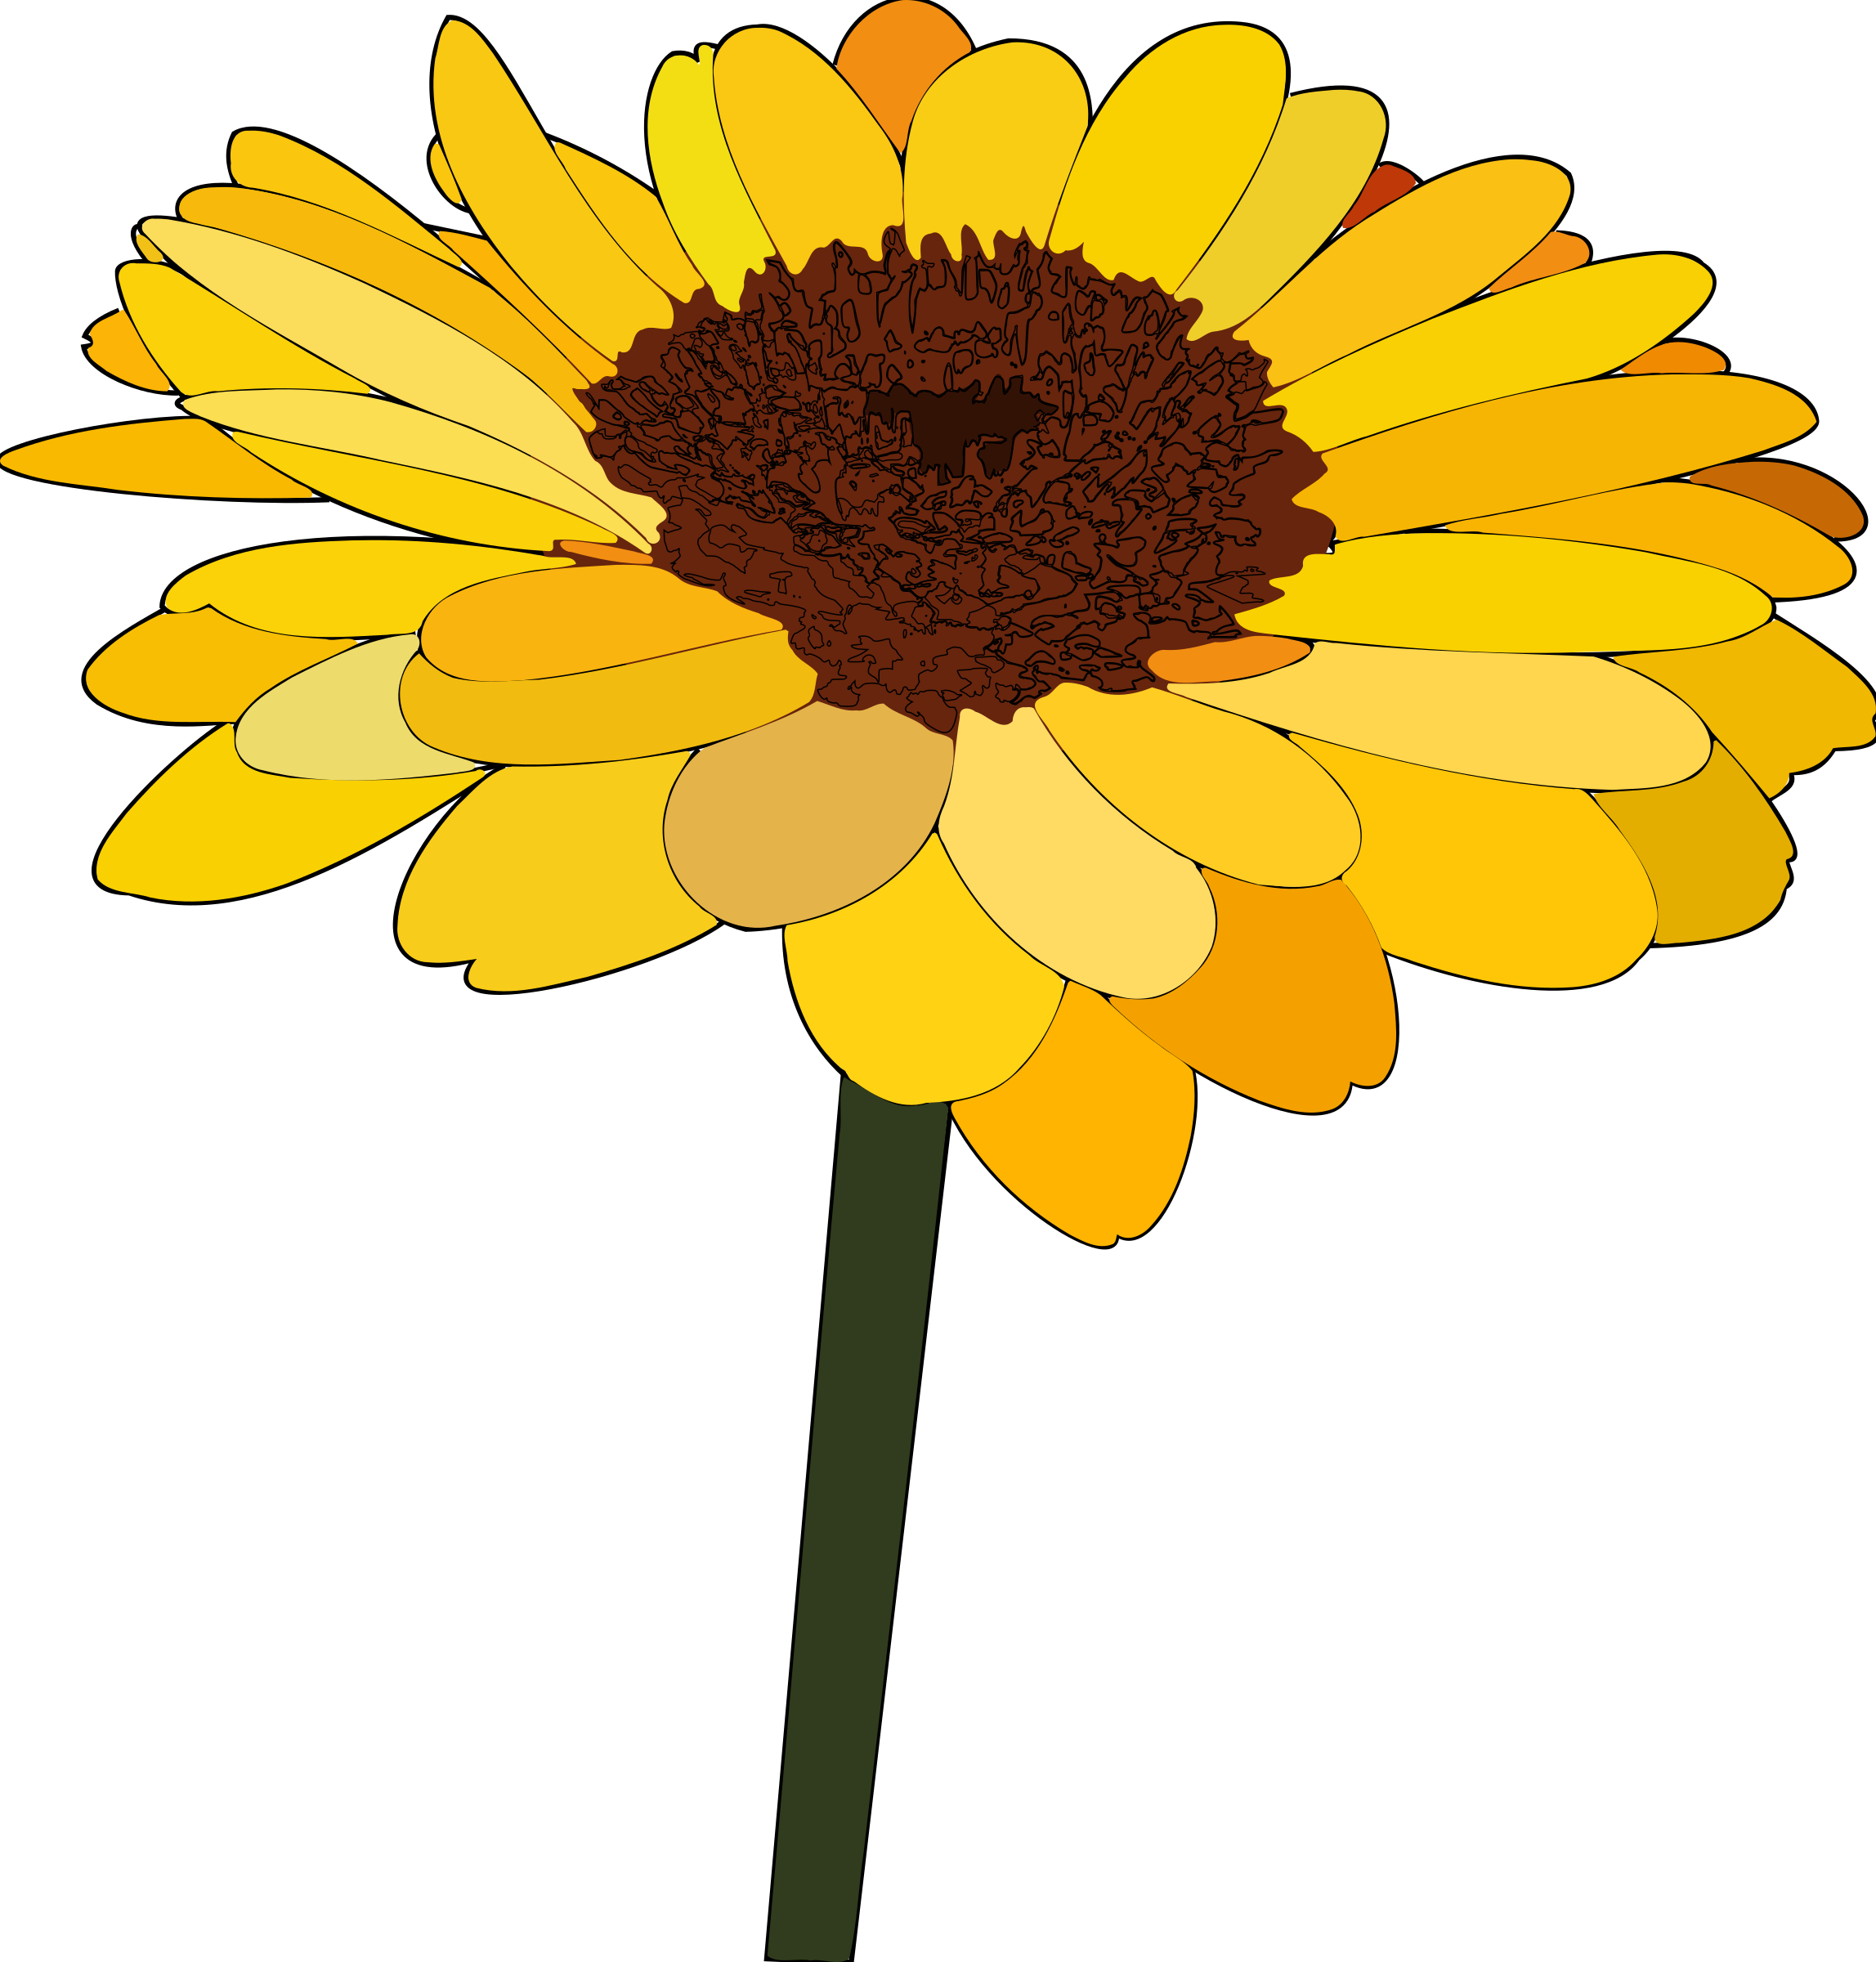 jpg freeuse  sunflower images photos. Sunflowers clipart thanksgiving.